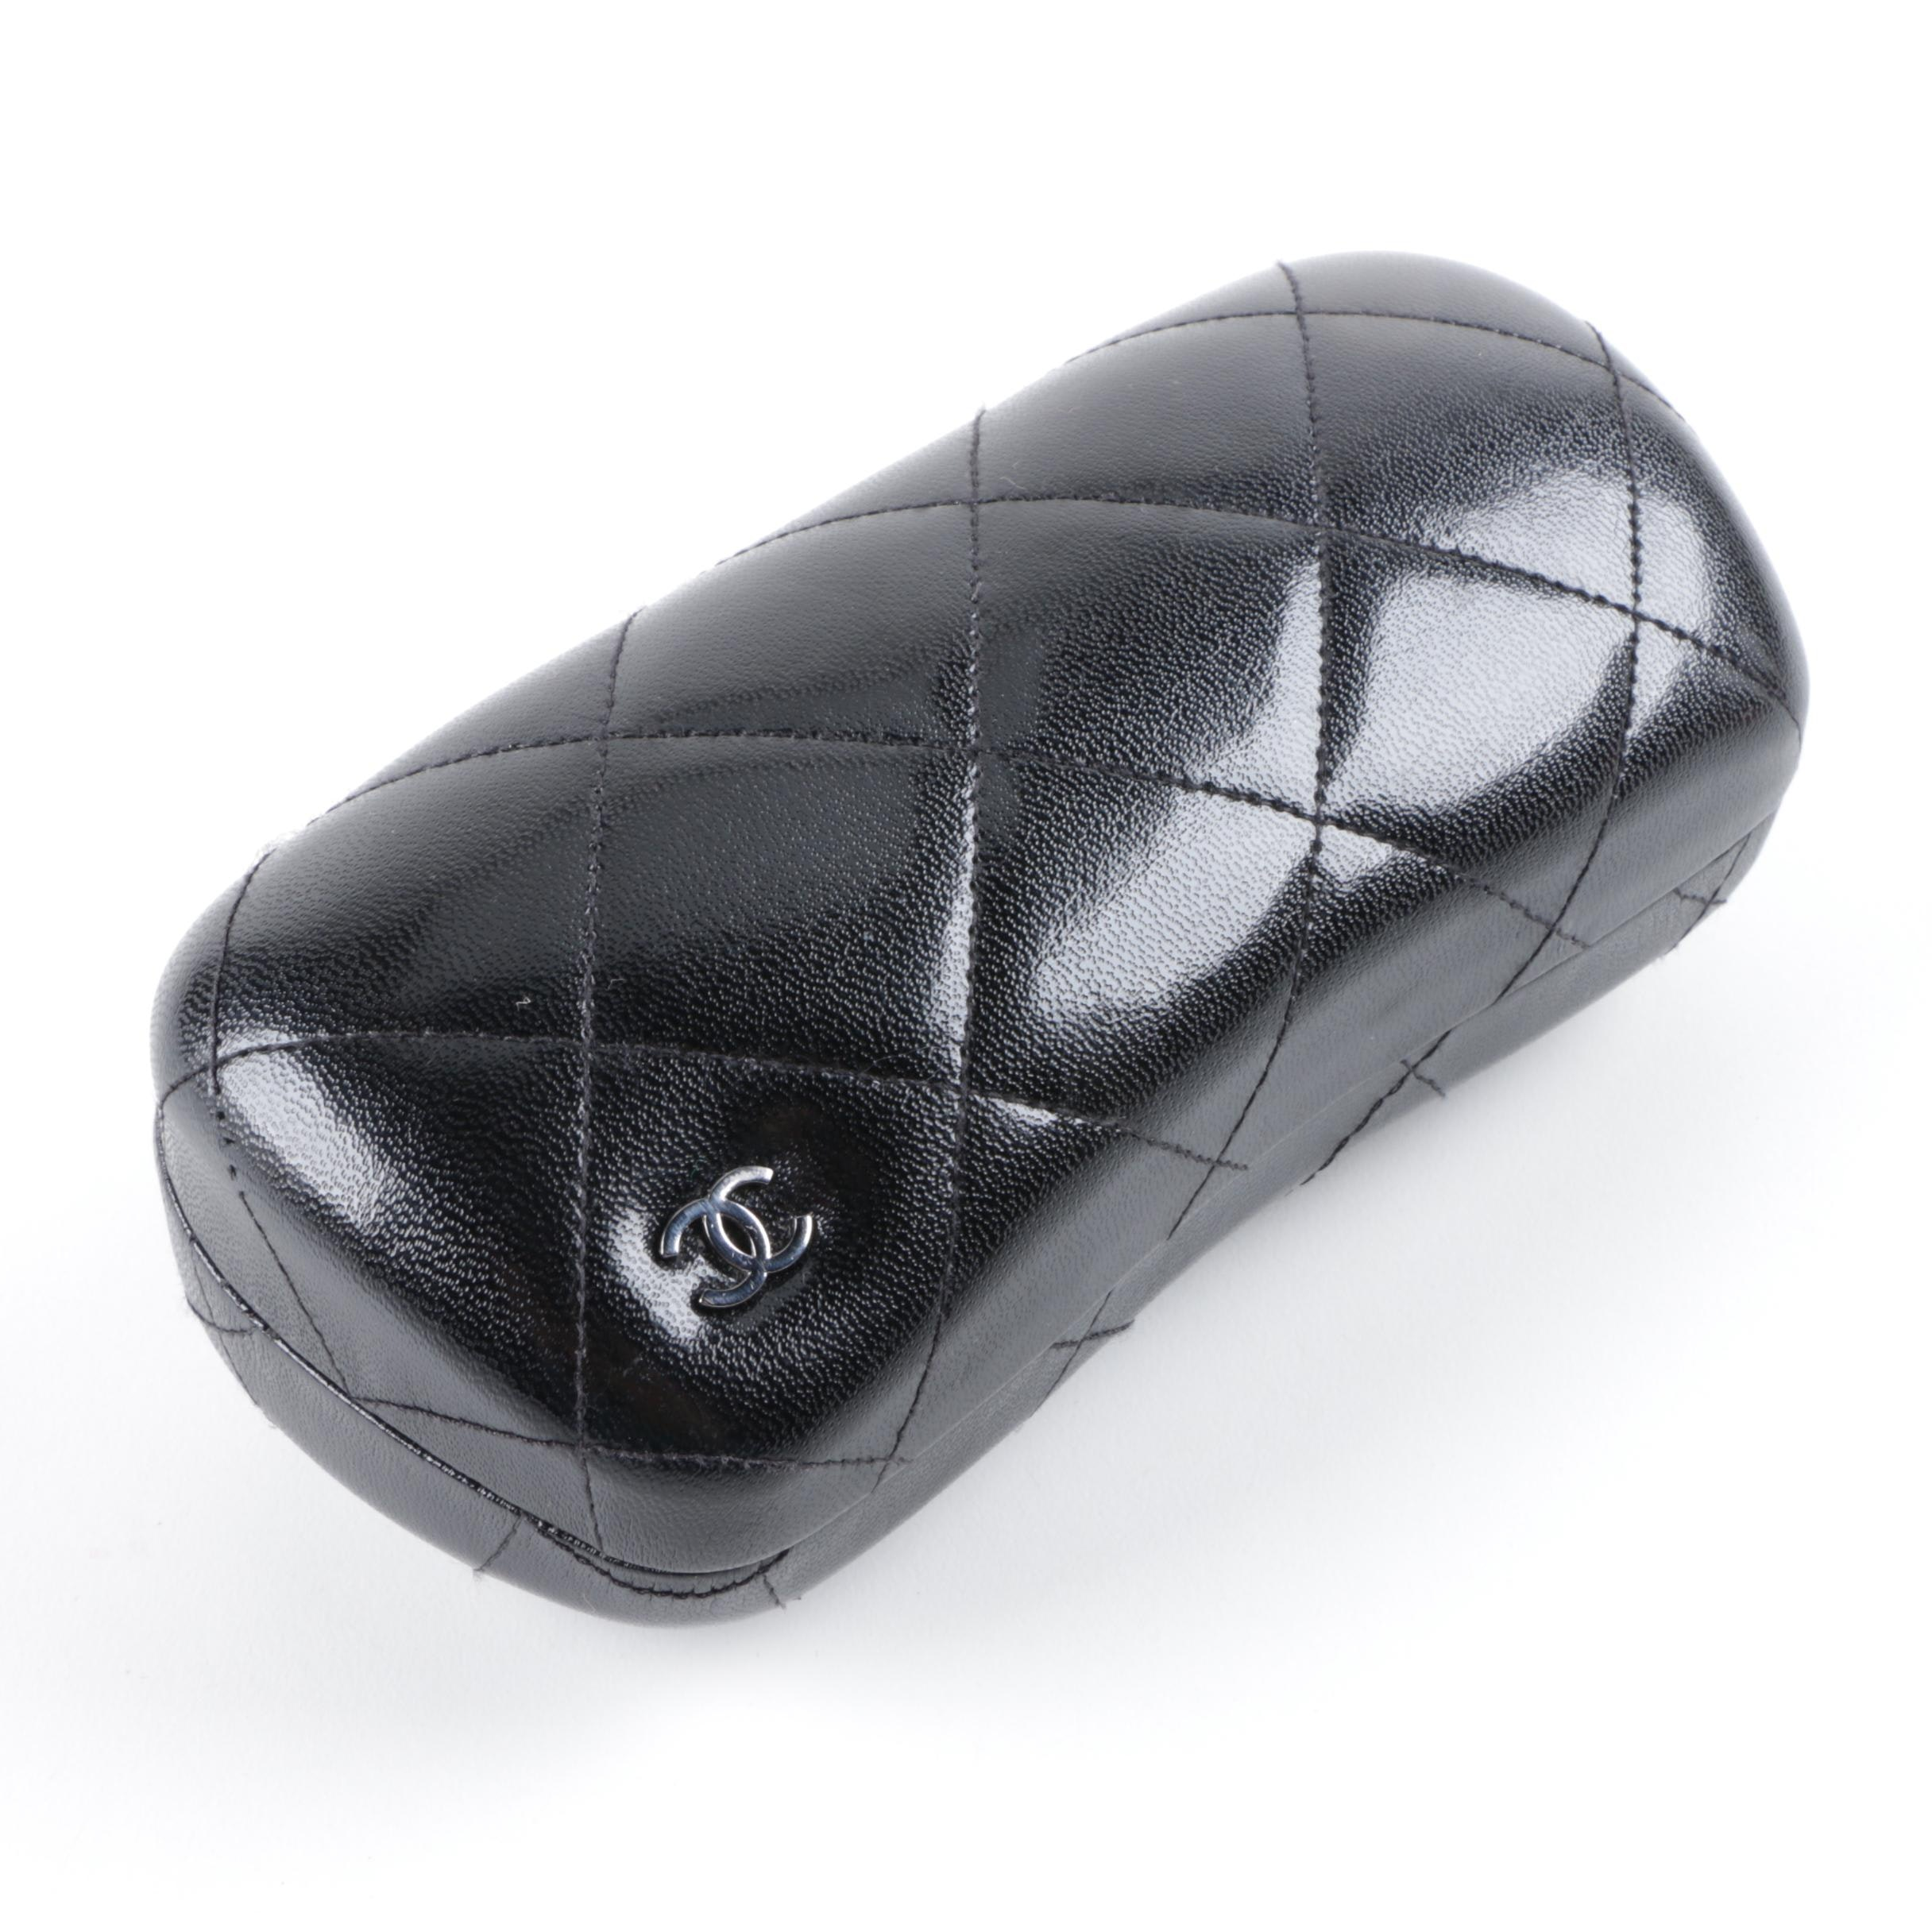 Chanel Black Quilted Leather Glasses Case